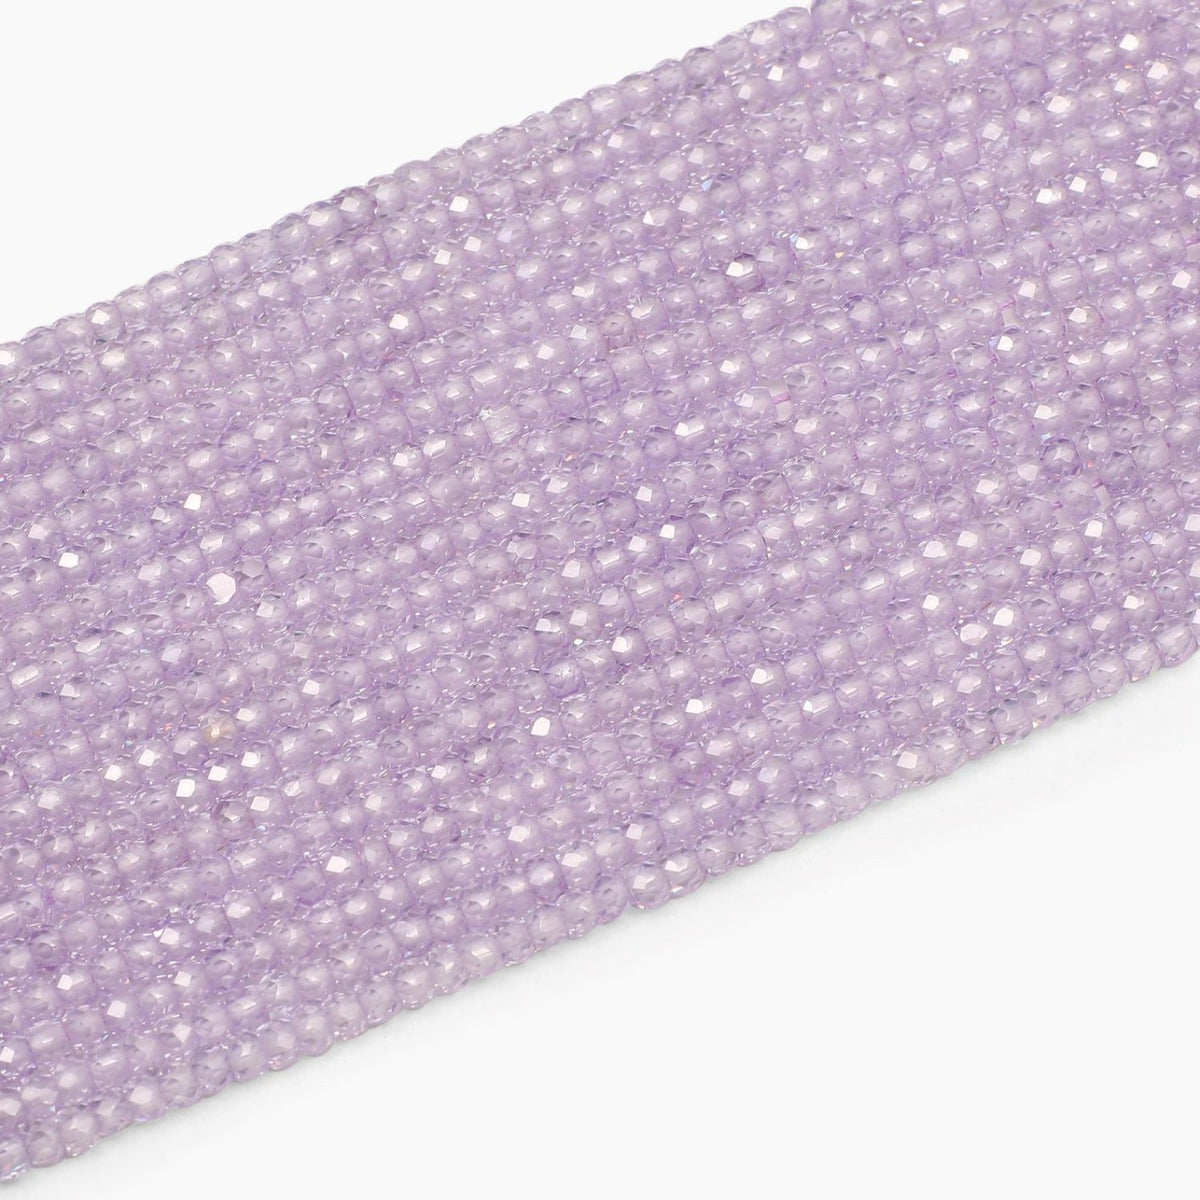 Light Lavender Faceted Cubic Zirconia Beads- Sold Per Strand